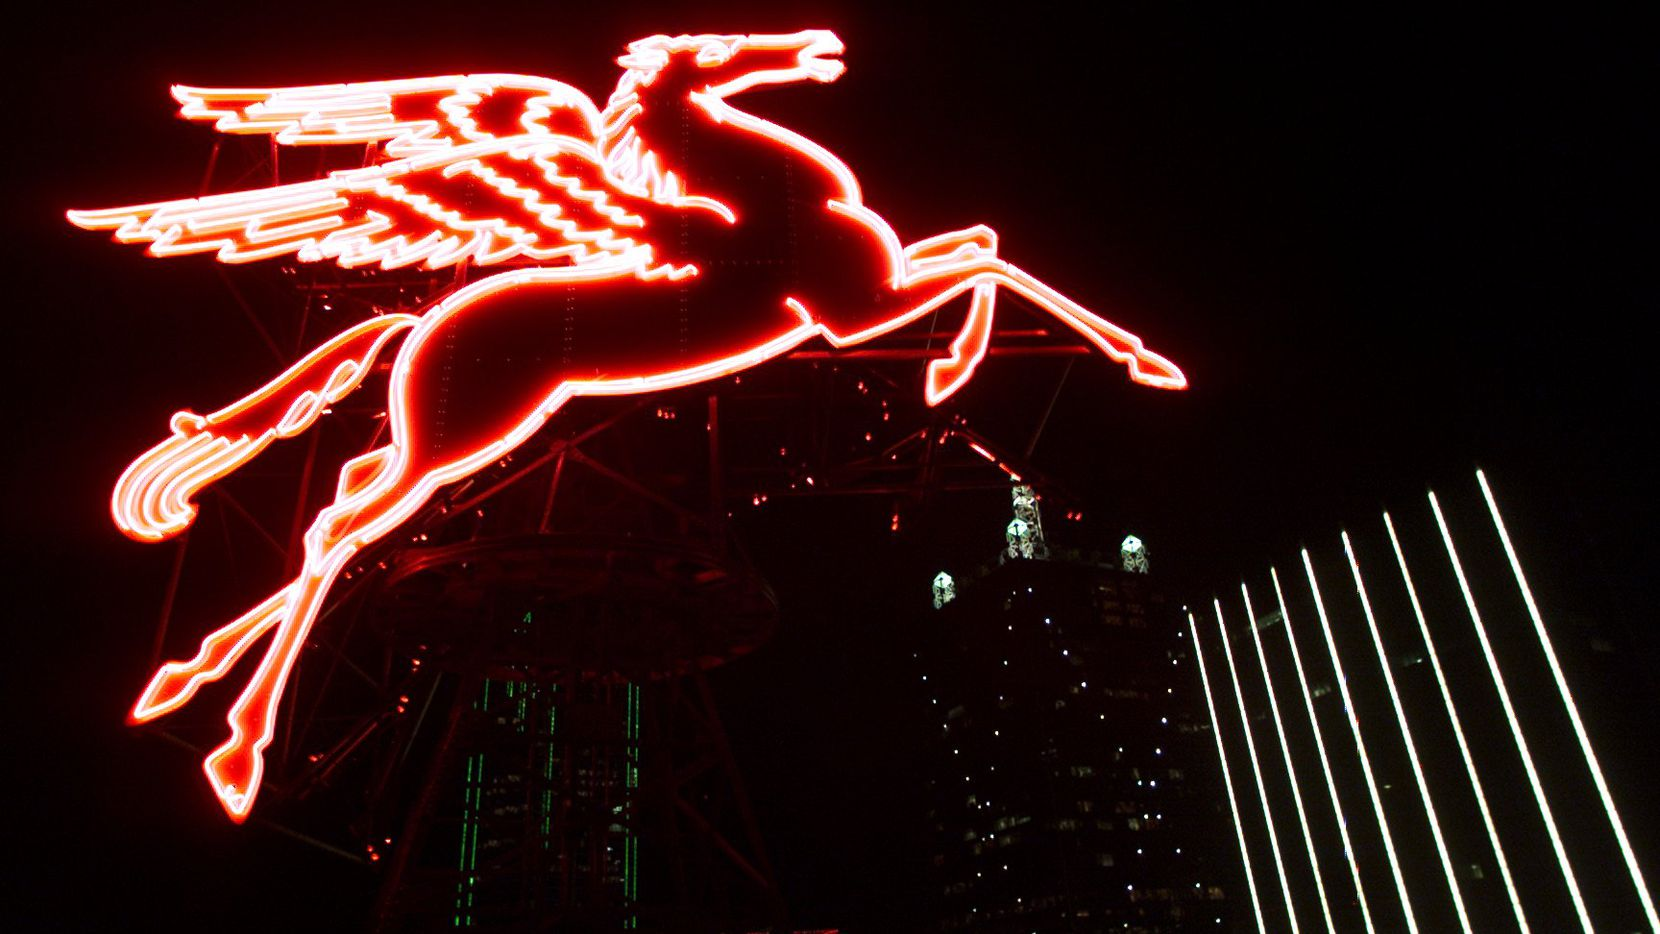 The Giant Pegasus rotates to life as fireworks are shot off in celebration of the year 2000 atop the Magnolia Building in downtown Dallas.